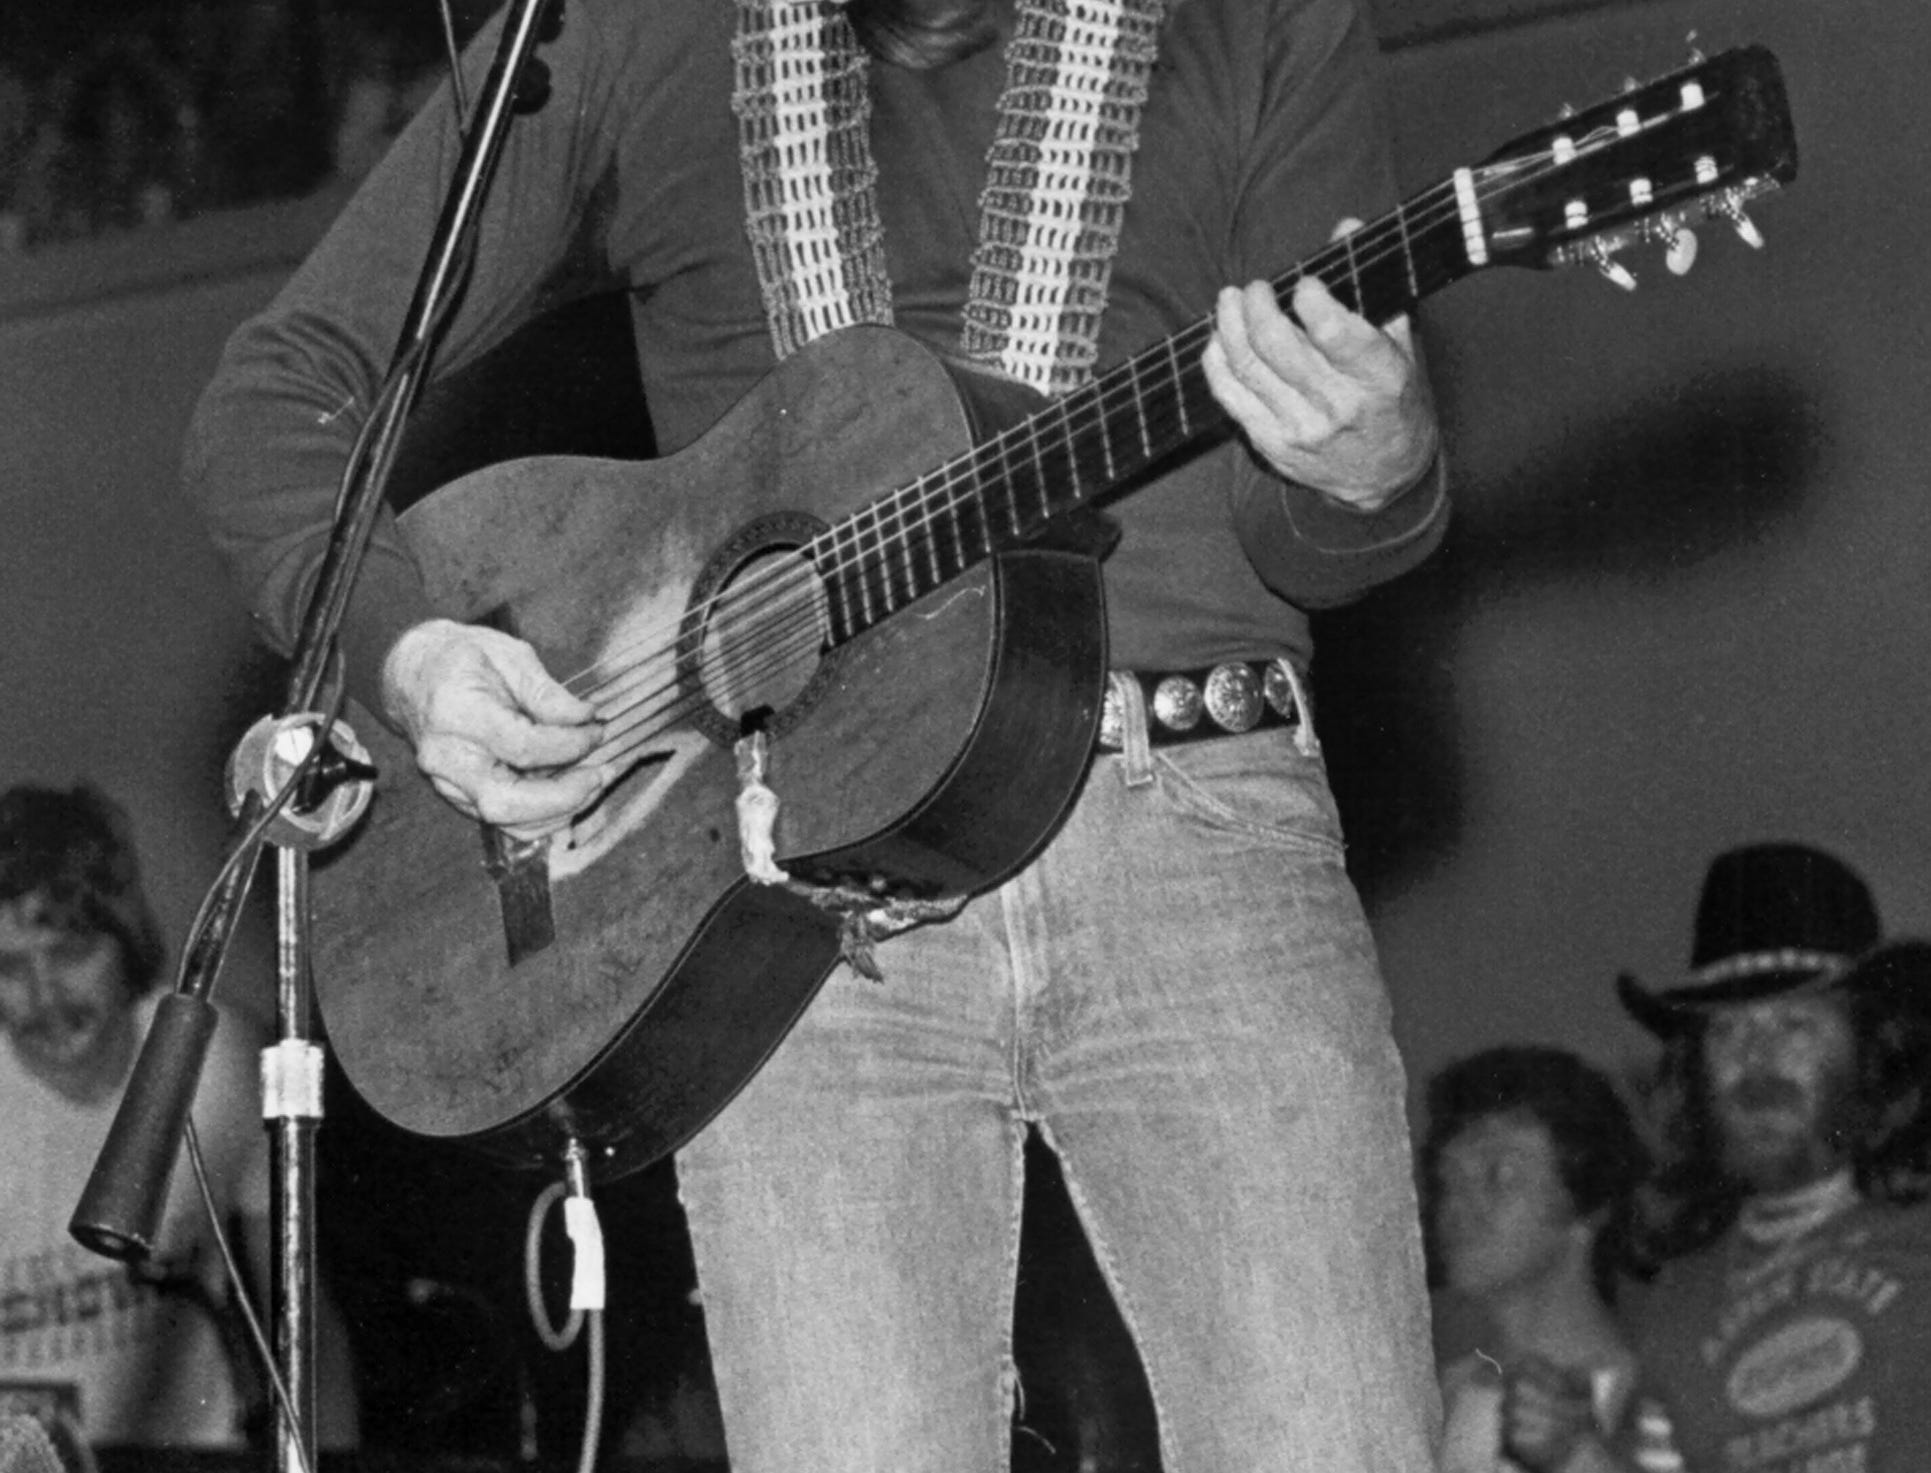 Willie Nelson drew 9,866 fans to the Mid-South Coliseum on Dec. 27, 1978. The concert, sponsored by Mid-South Concerts, was the second stop on a five-city tour by Nelson, the 45-year-old native of Abbott, Texas.